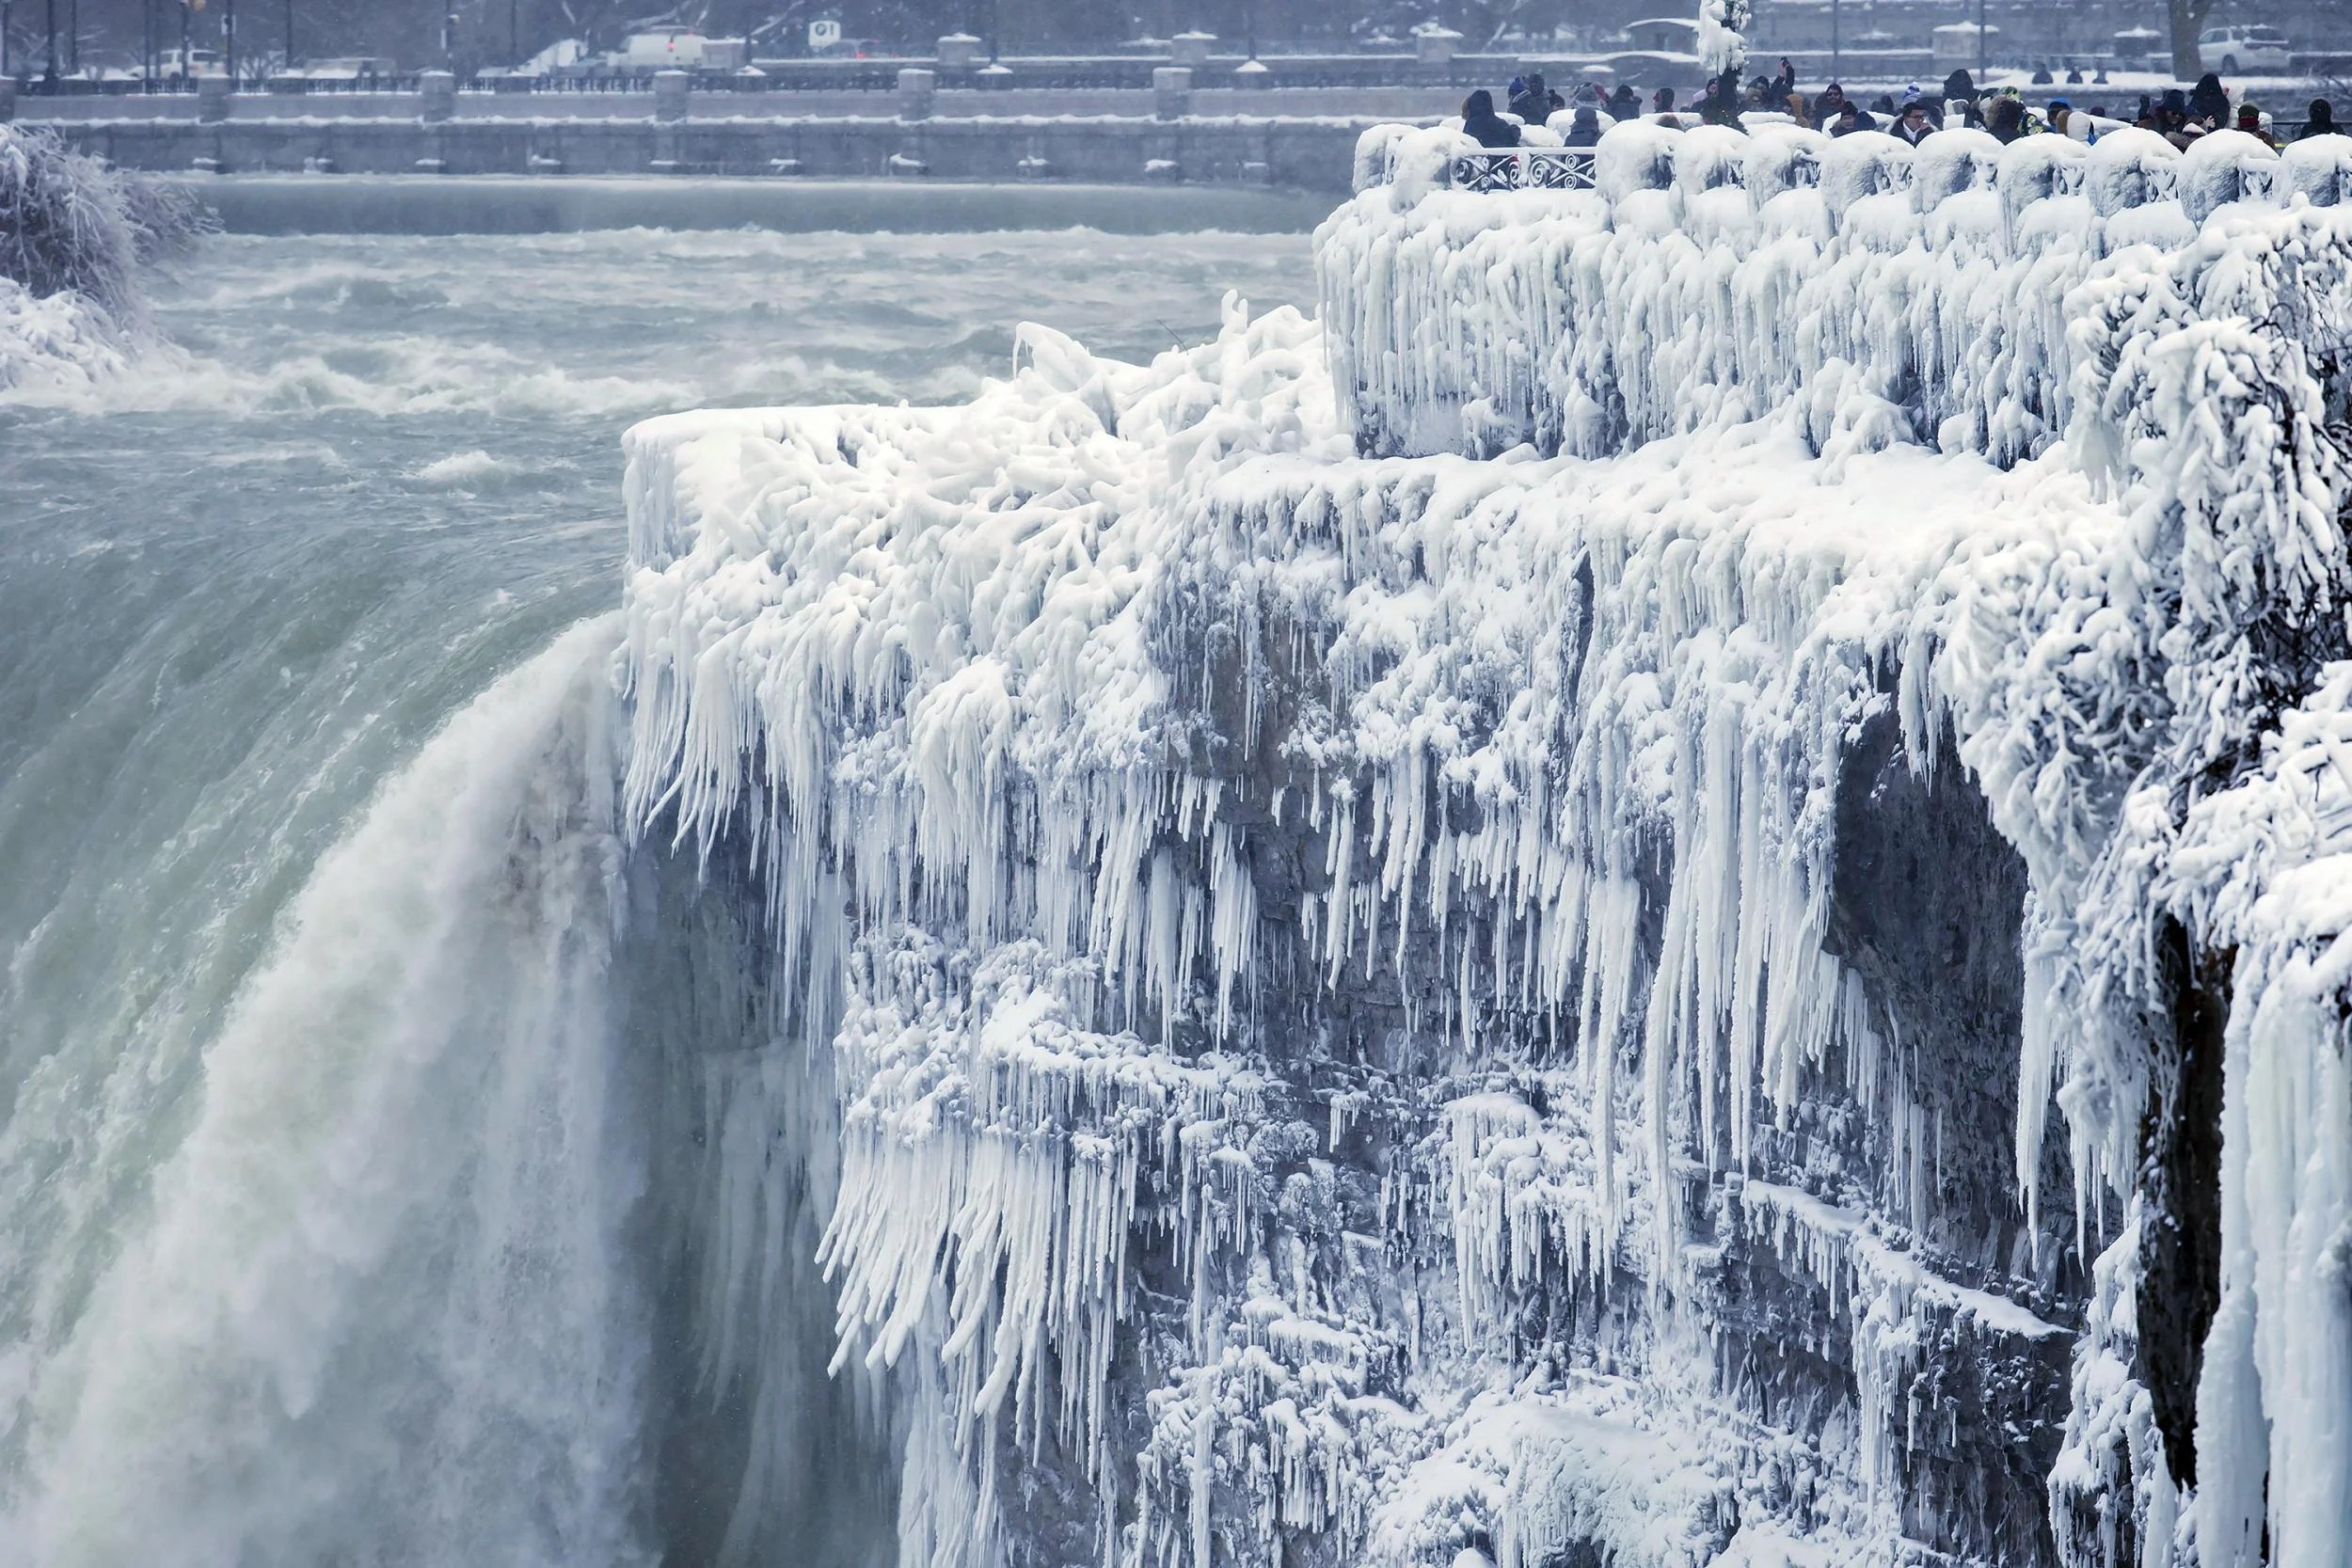 Niagara Falls Is Frozen Over As Icy Weather Grips United States